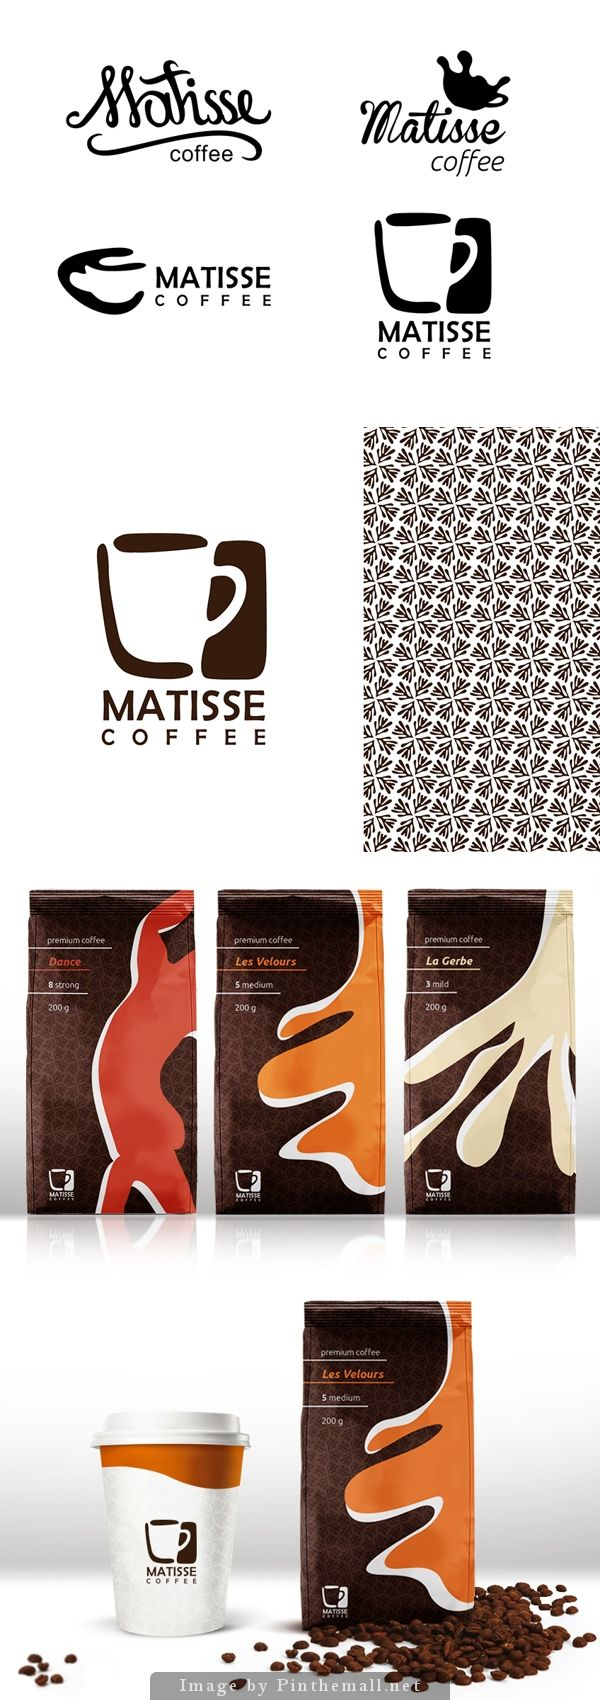 The concept of packaging design coffee by Julia https://www.behance.net/gallery/10983651/The-concept-of-packaging-design-coffee #coffee #kawa #kafe #cofe #coffe #design #packaging